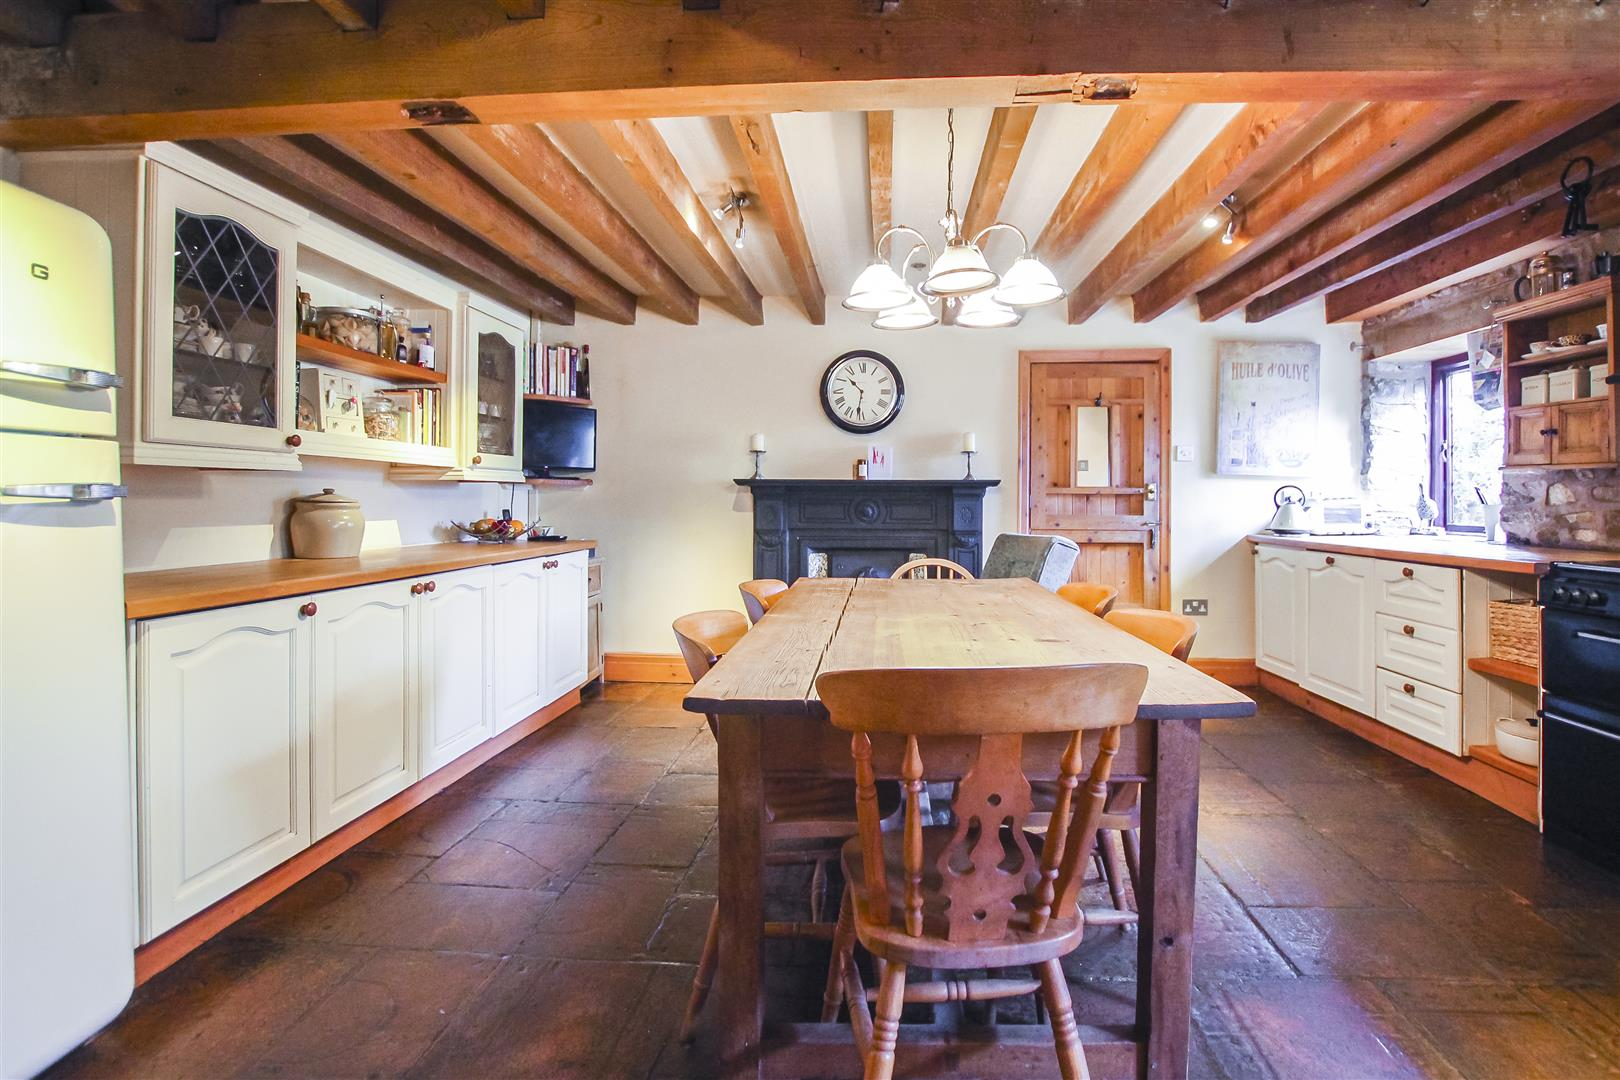 5 Bedroom Barn Conversion For Sale - Image 50